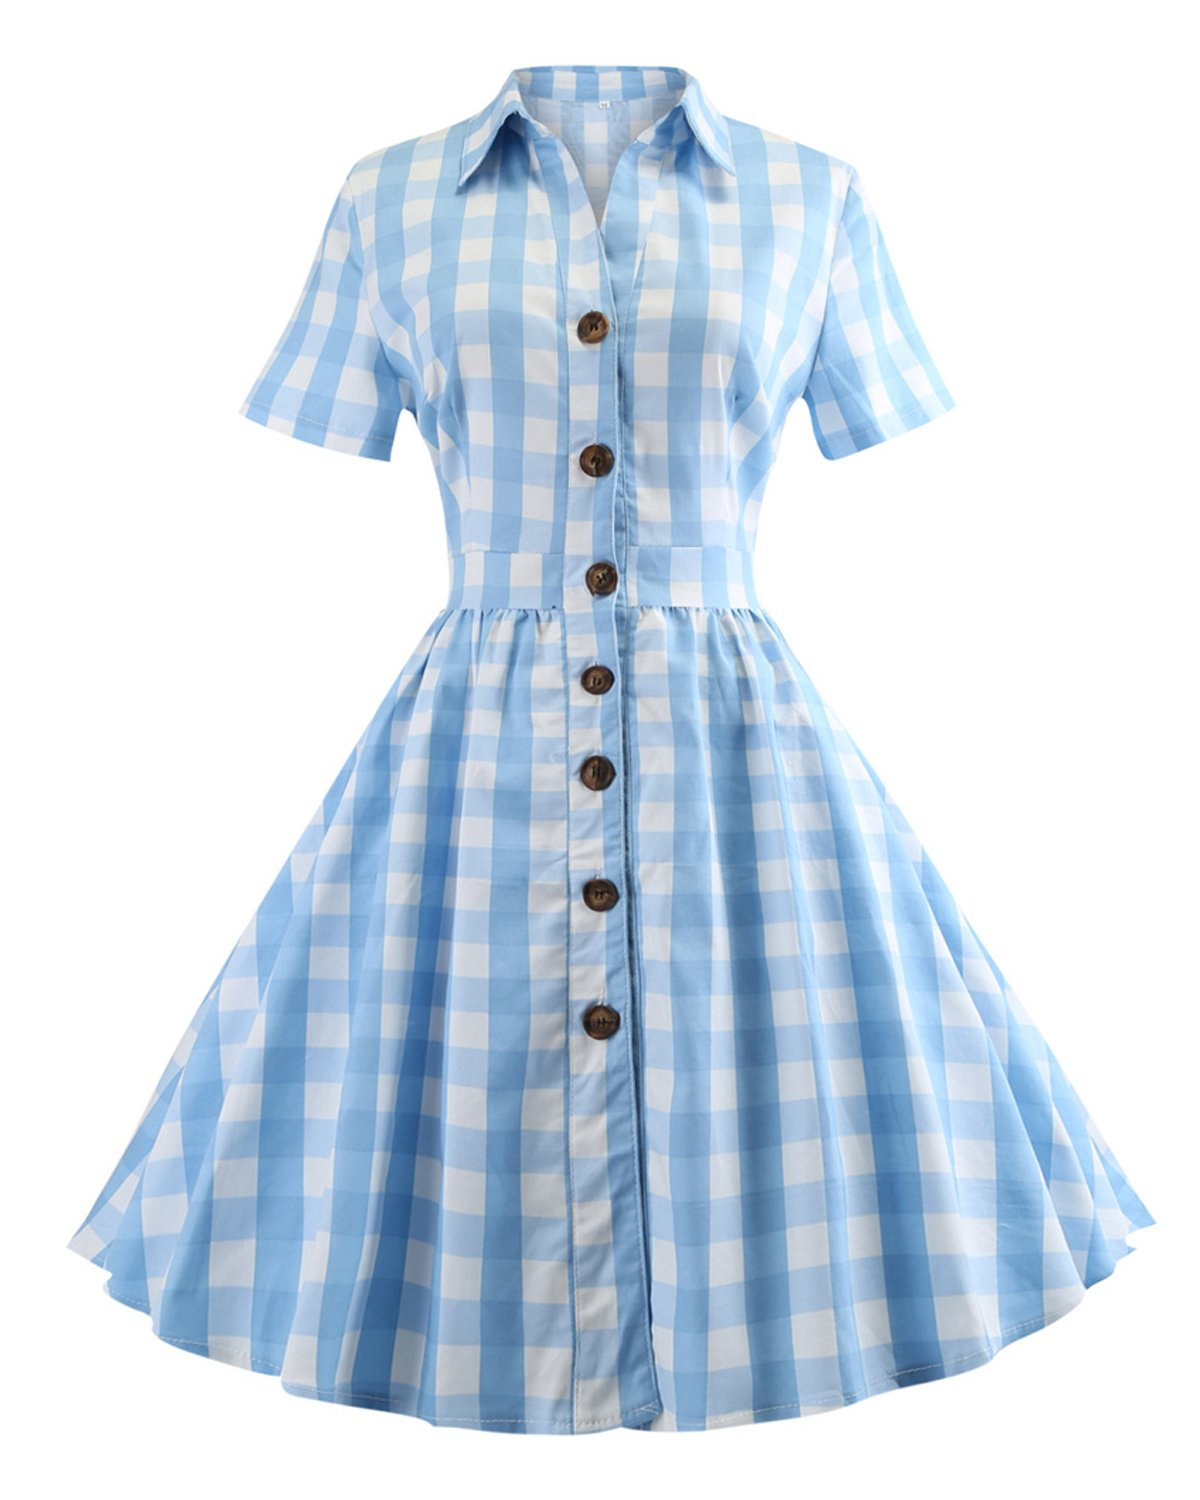 ZAFUL Women's 1950s Vintage Cap Sleeve V Neck Plaid Swing Dress with Pockets(Blue Checkered with Button,3XL)